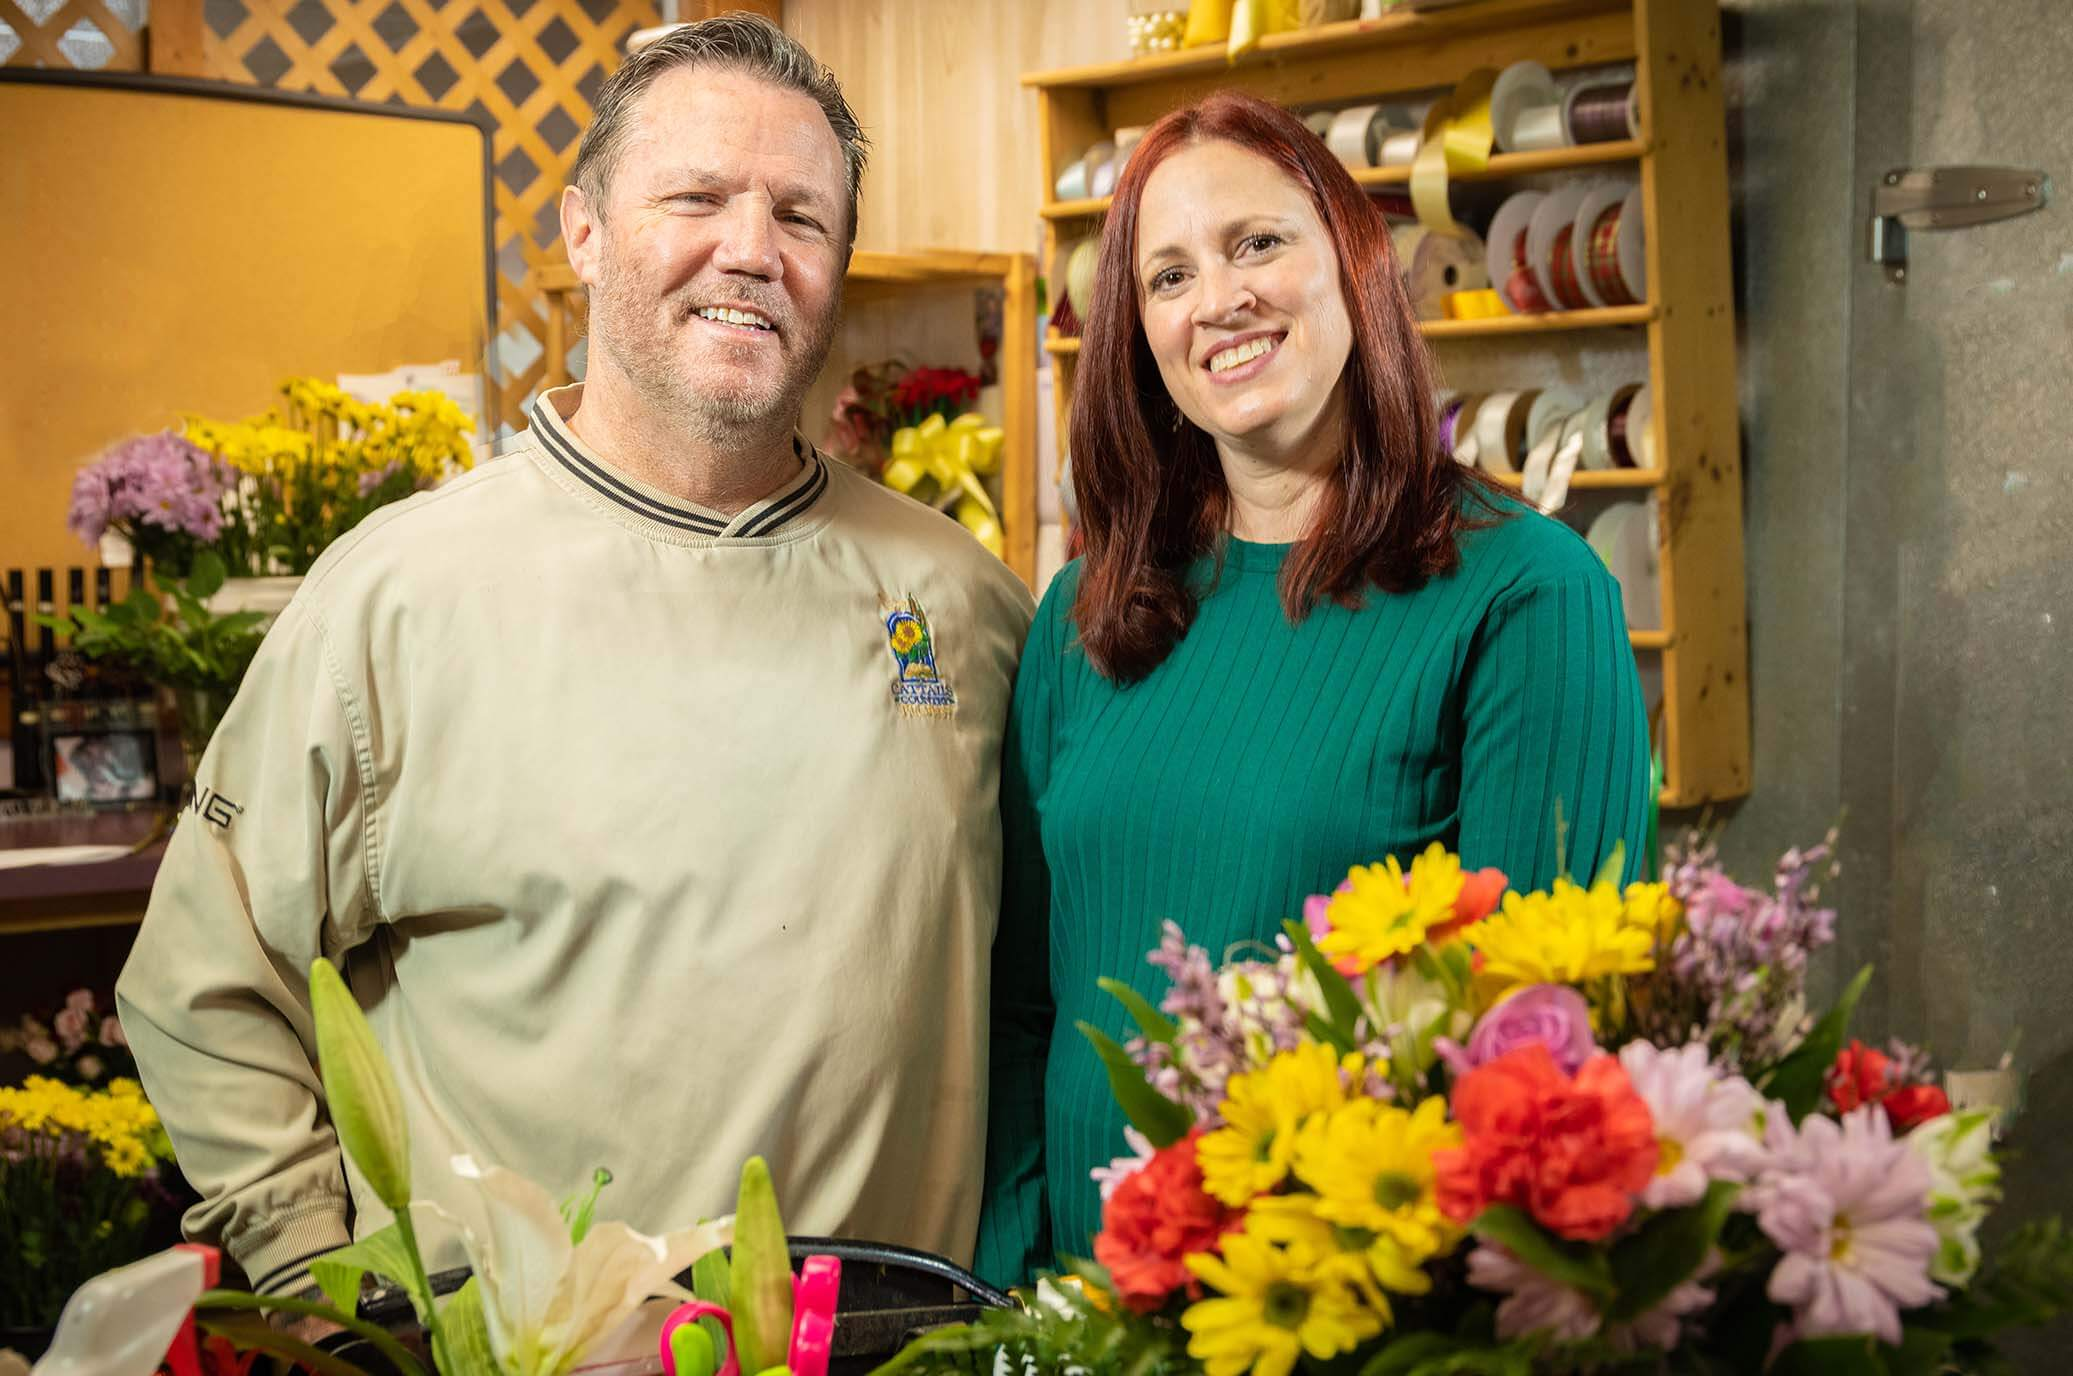 Committed to local businesses like Cattails Country Florist